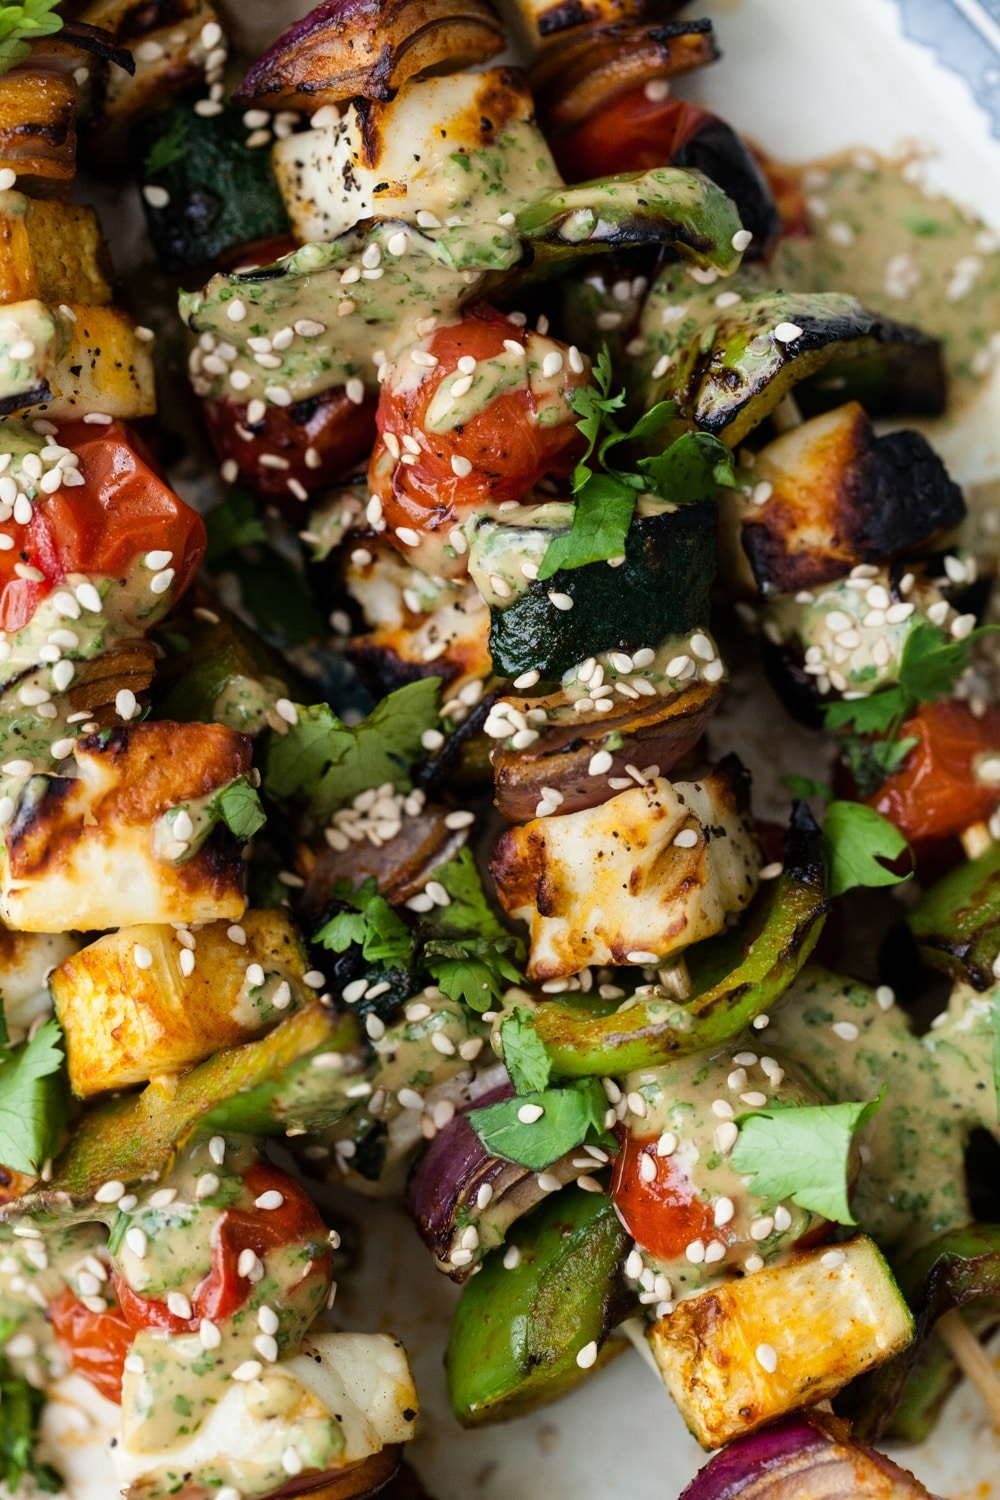 Grilled Halloumi Skewers with Cilantro-Tahini Sauce | Vegetarian Grilling Recipes